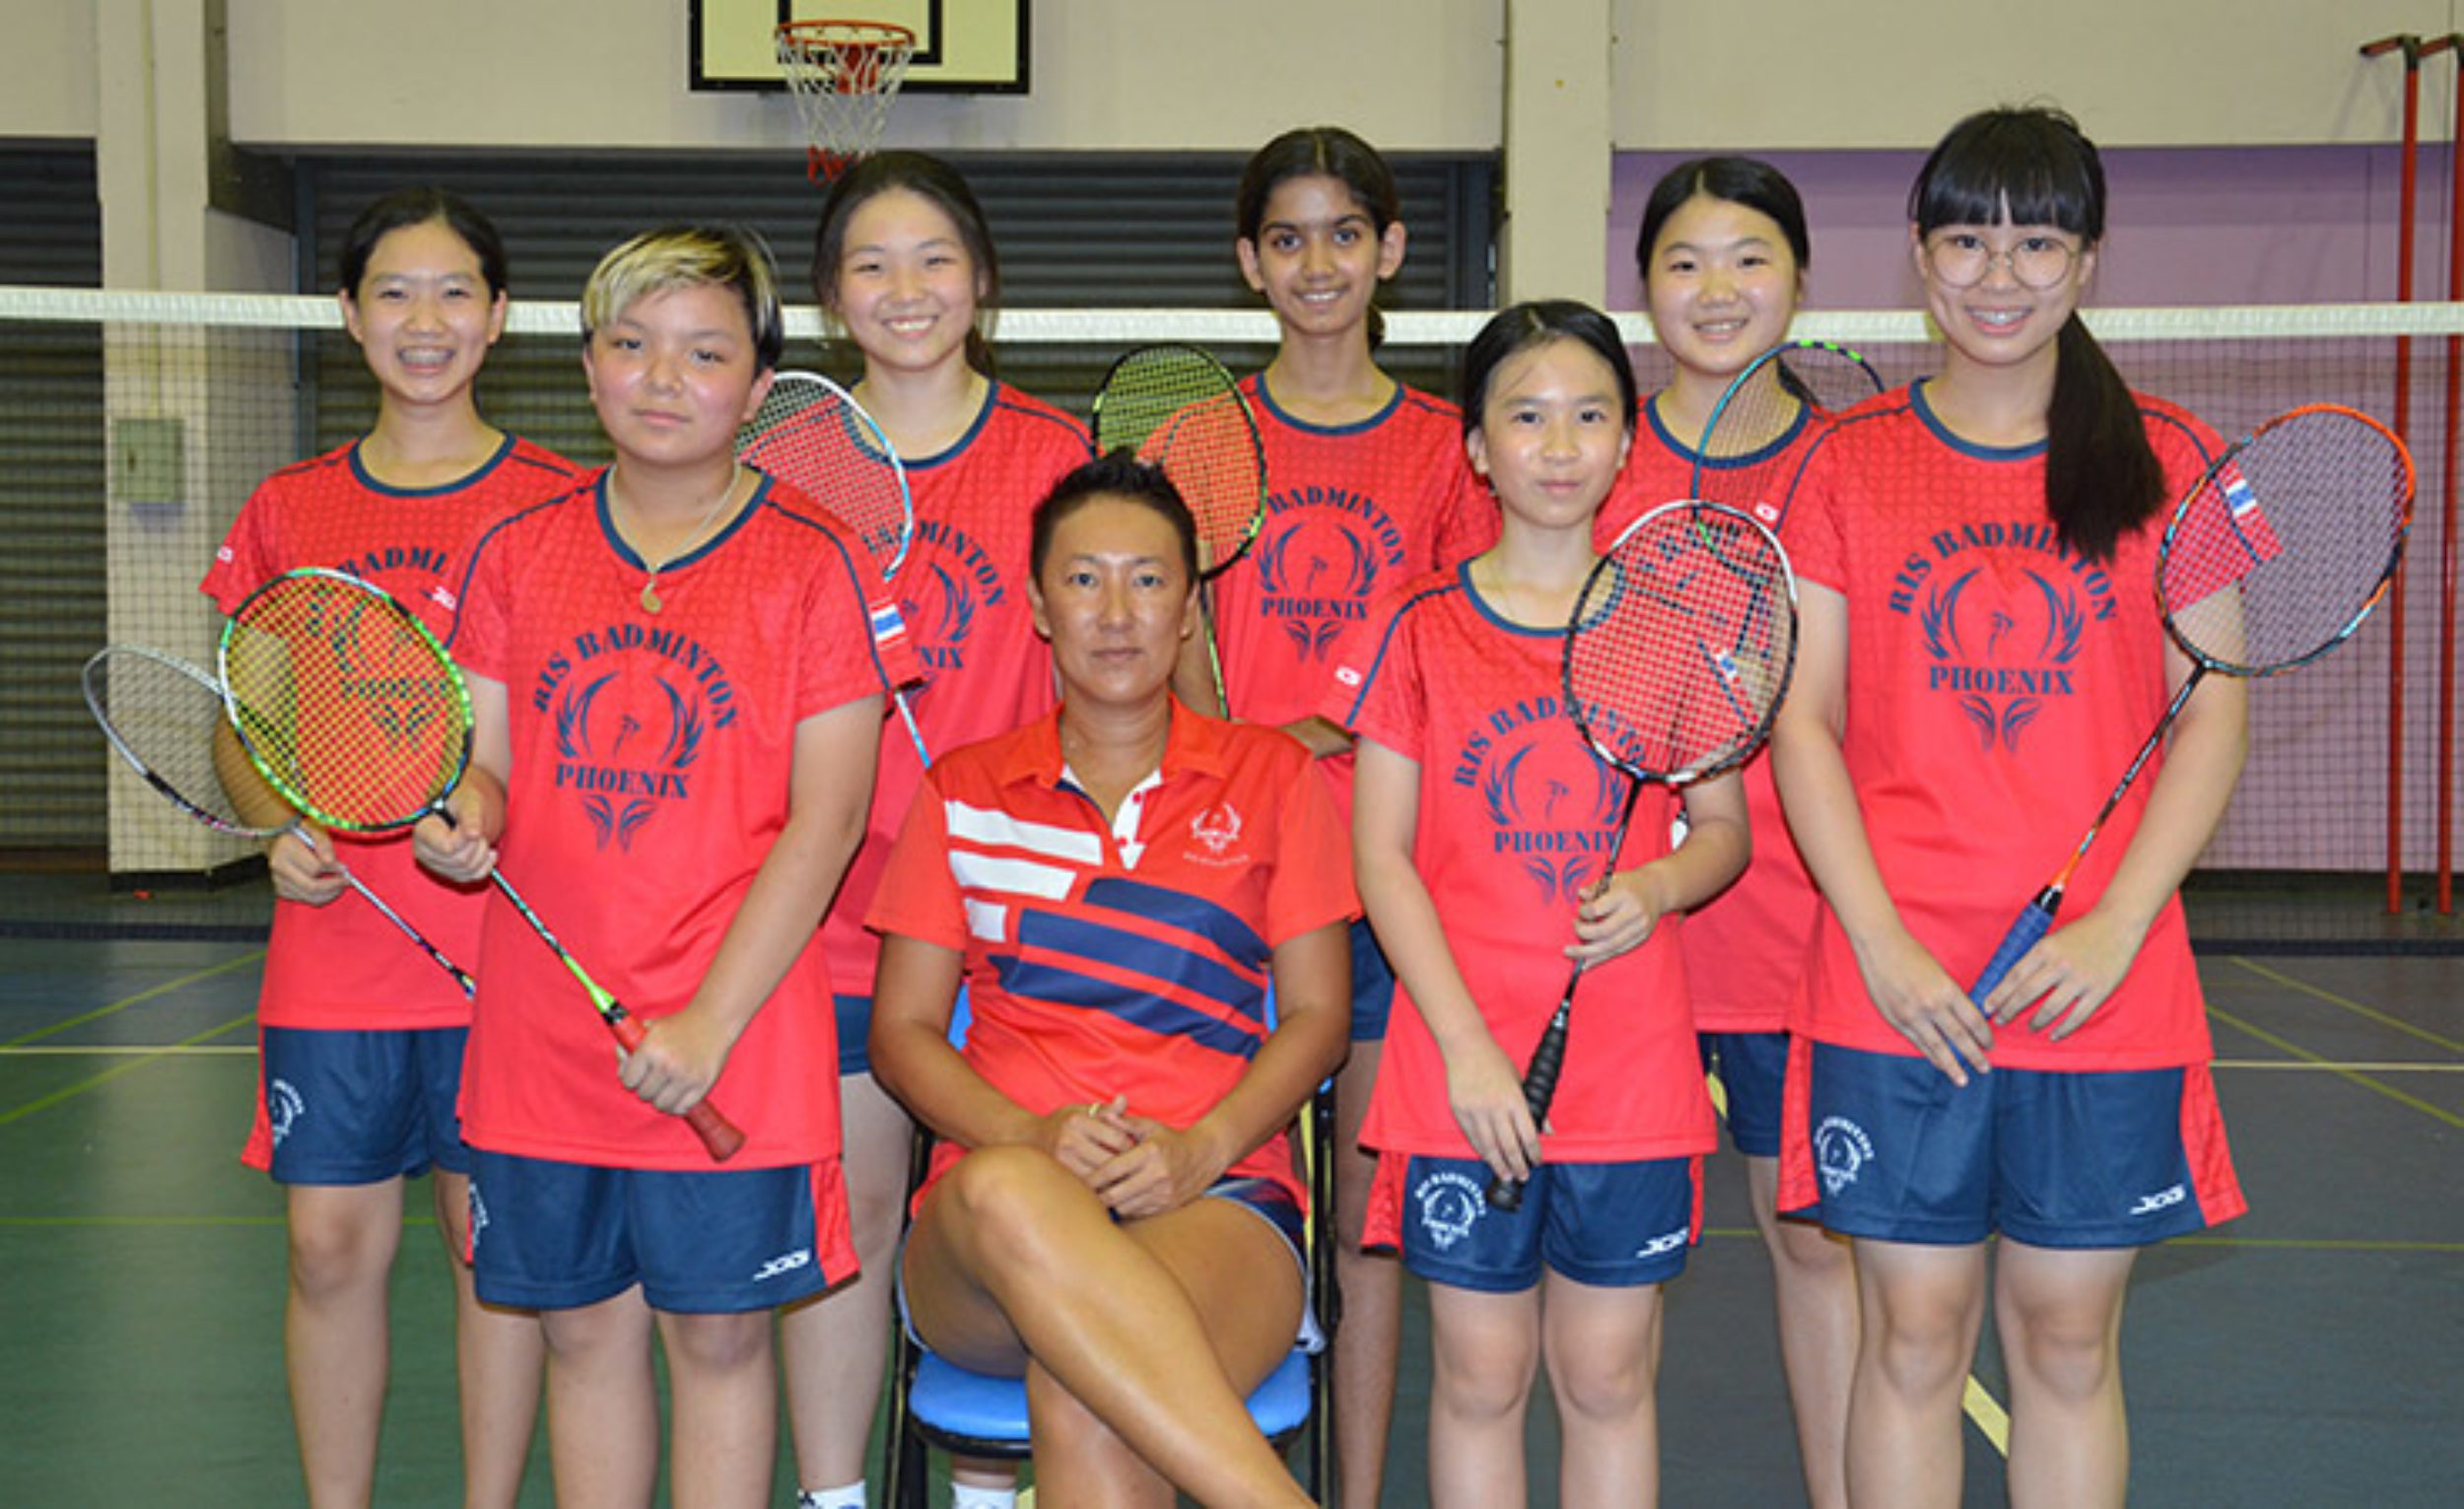 U13 Girls Badminton